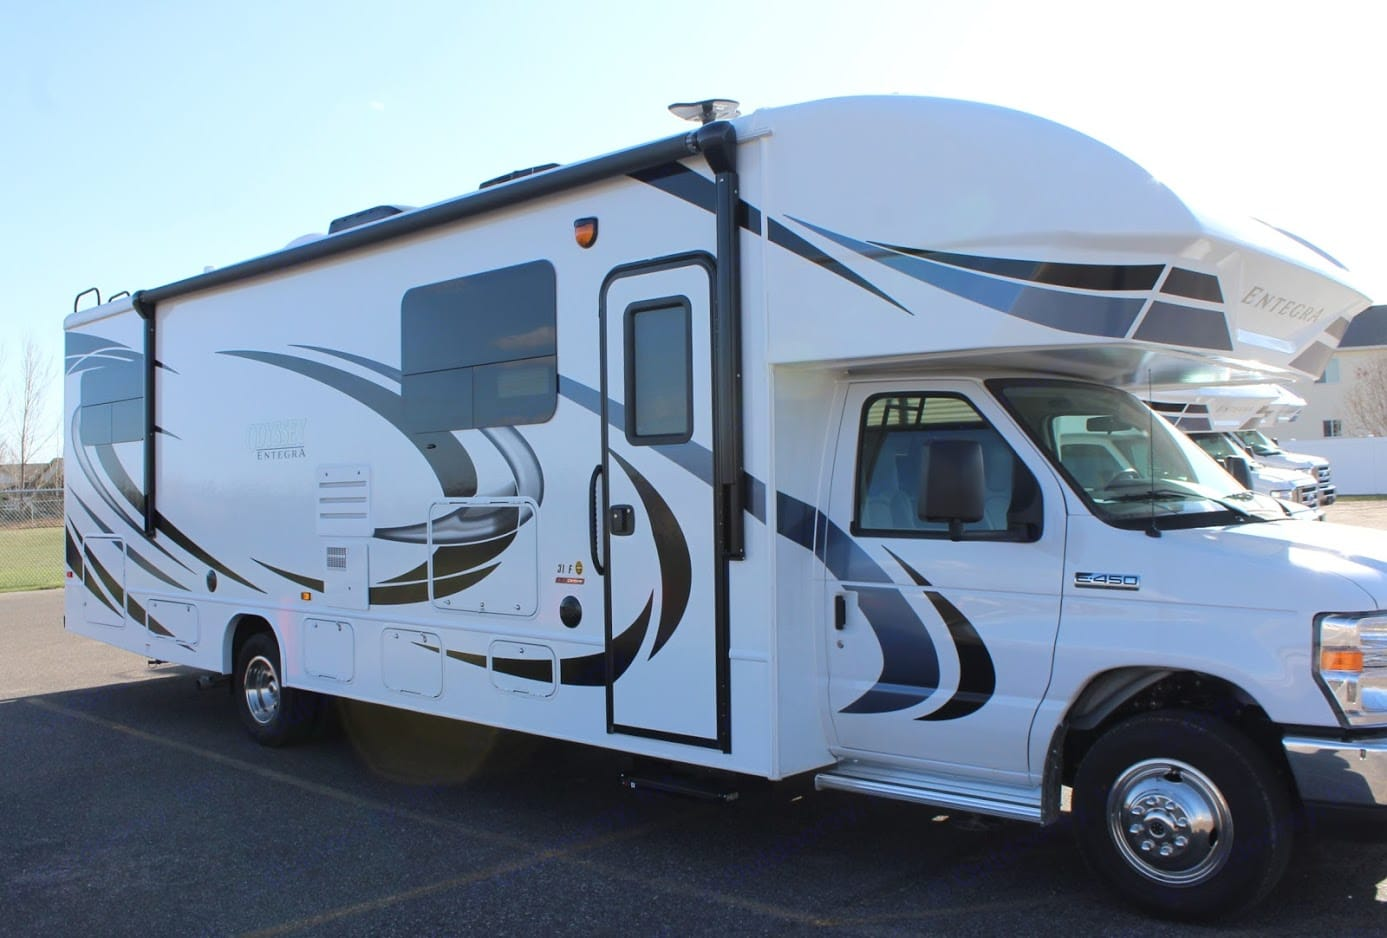 Passenger side entry to the RV. Entegra Coach Odyssey 31 F 2020